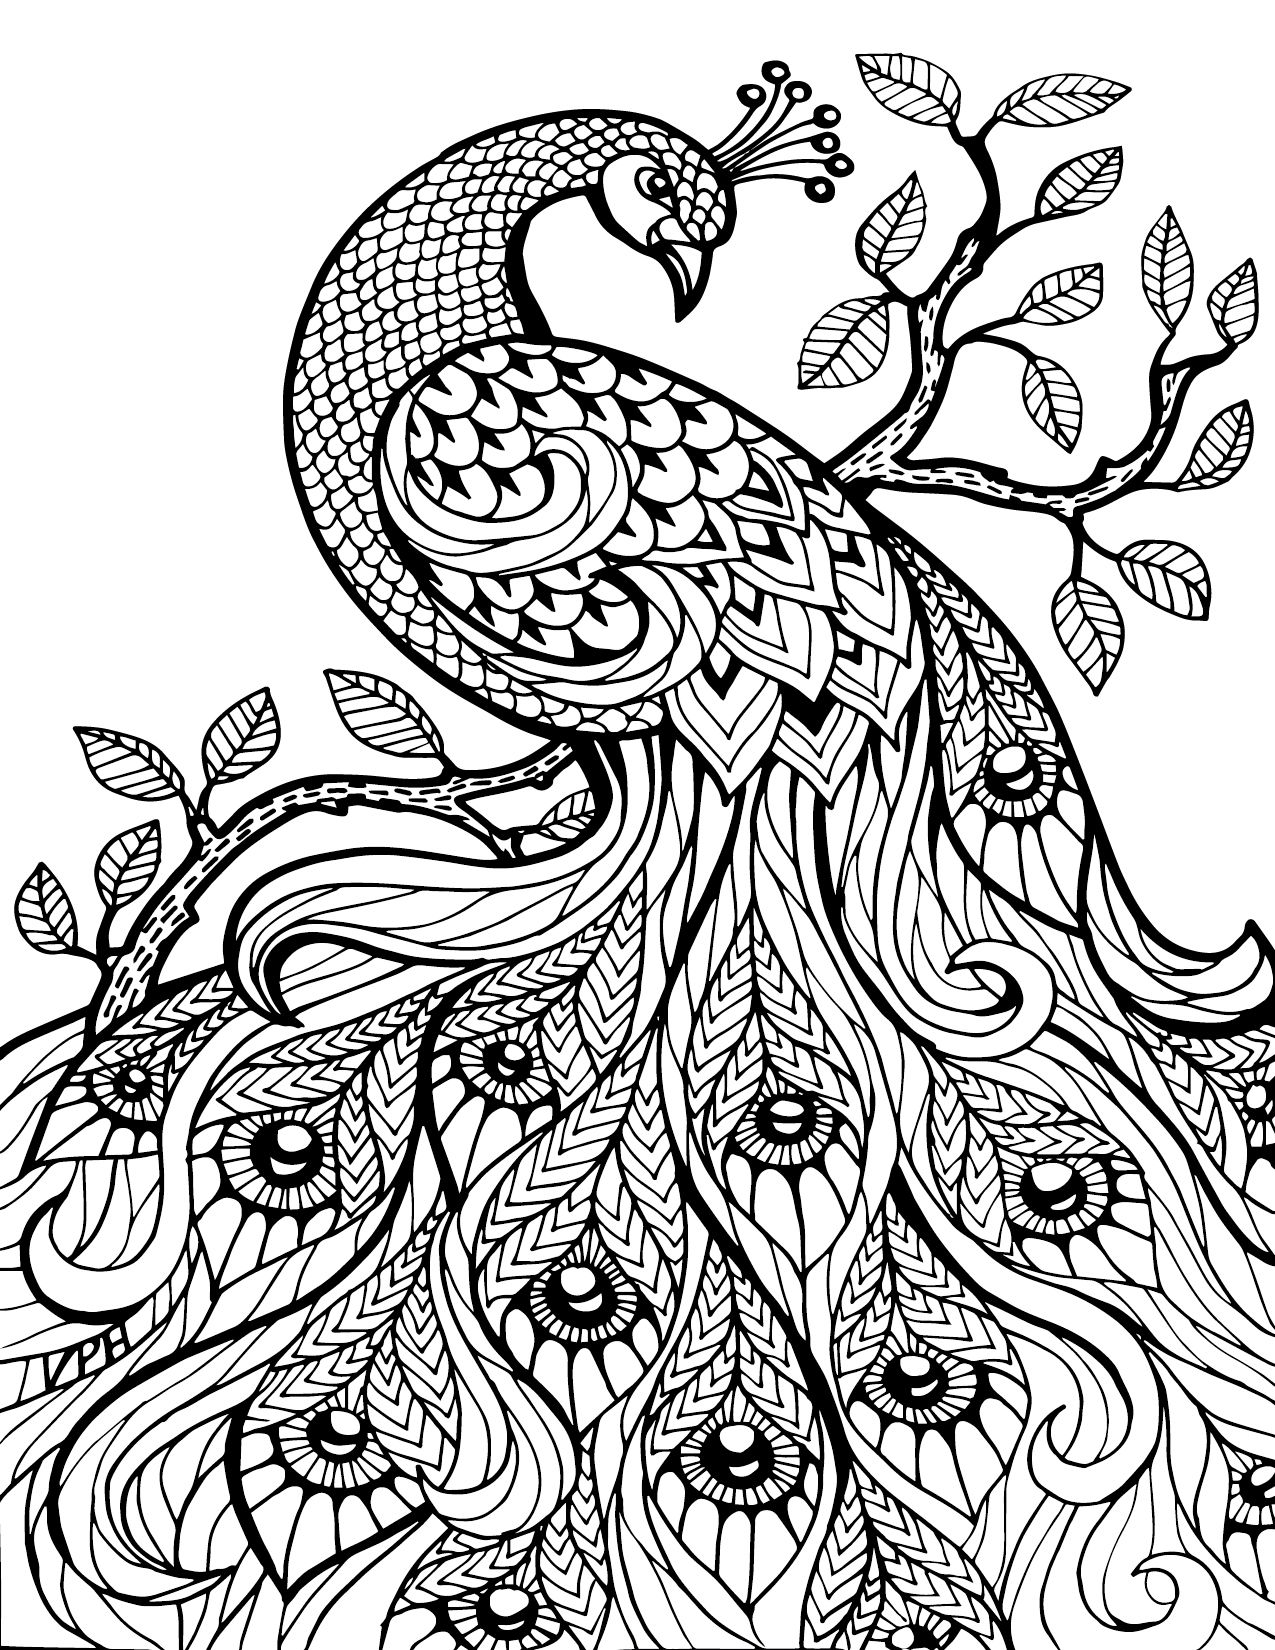 How much is the coloring book for adults - Coloring Book Pages